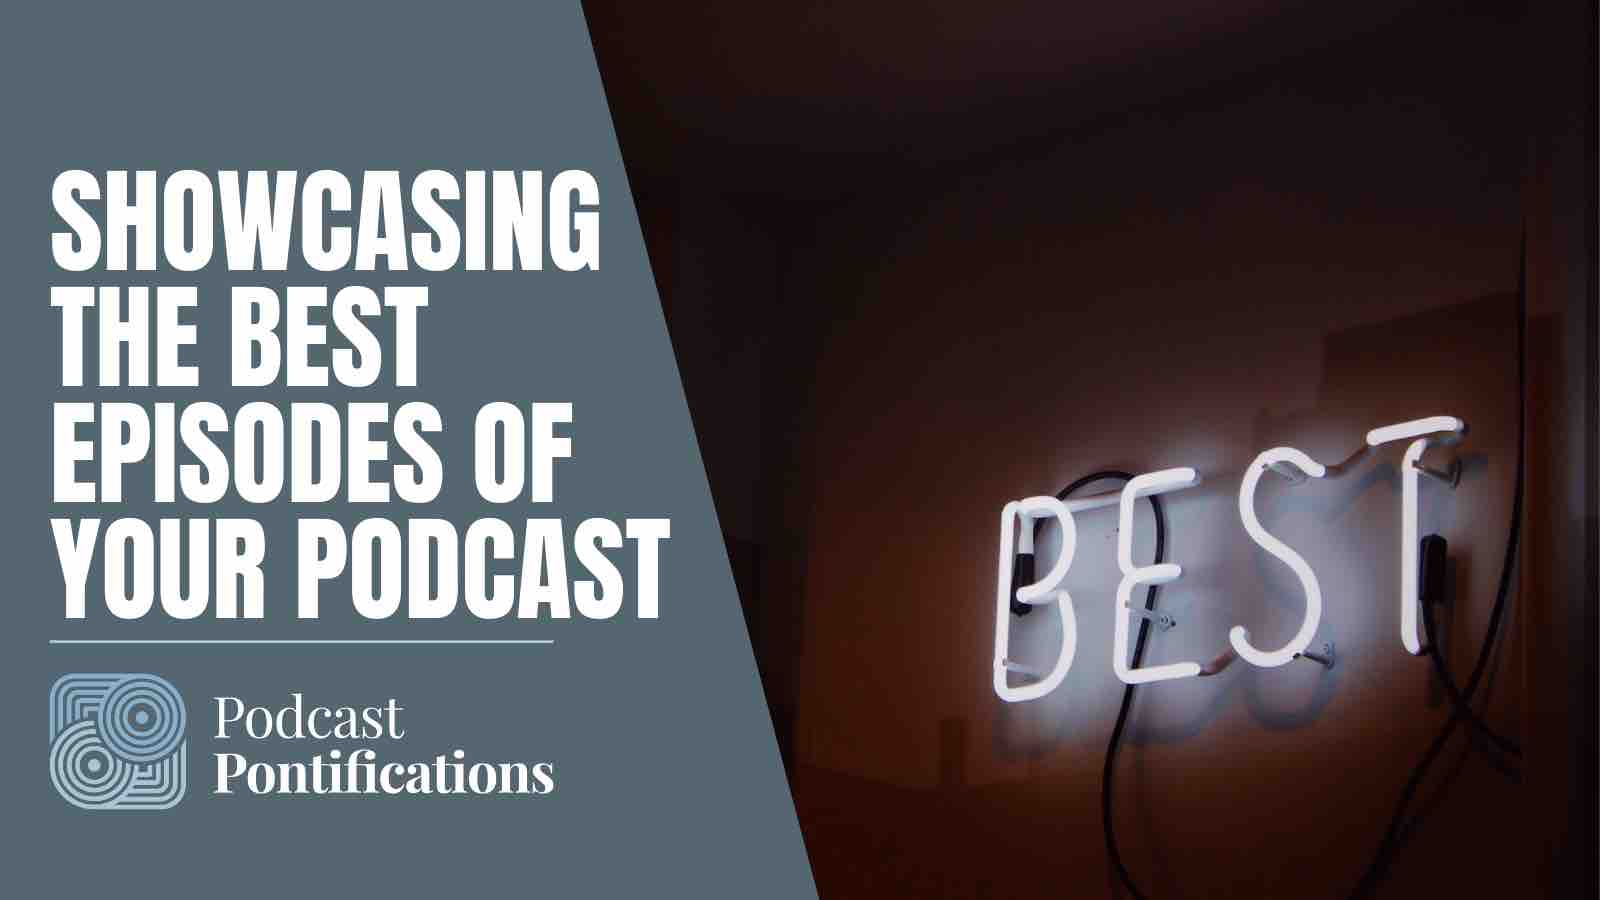 Showcasing The Best Episodes Of Your Podcast